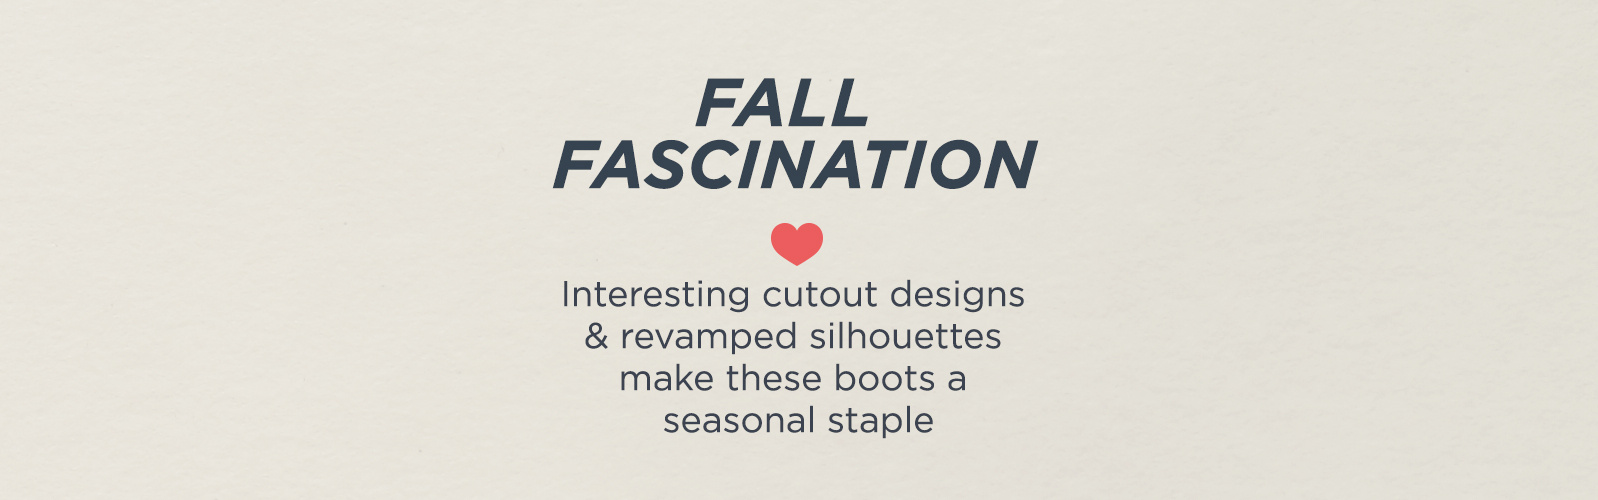 Fall Fascination  Interesting cutout designs & revamped silhouettes make this a seasonal stapleFall Fascination  Interesting cutout designs & revamped silhouettes make these boots a seasonal staple